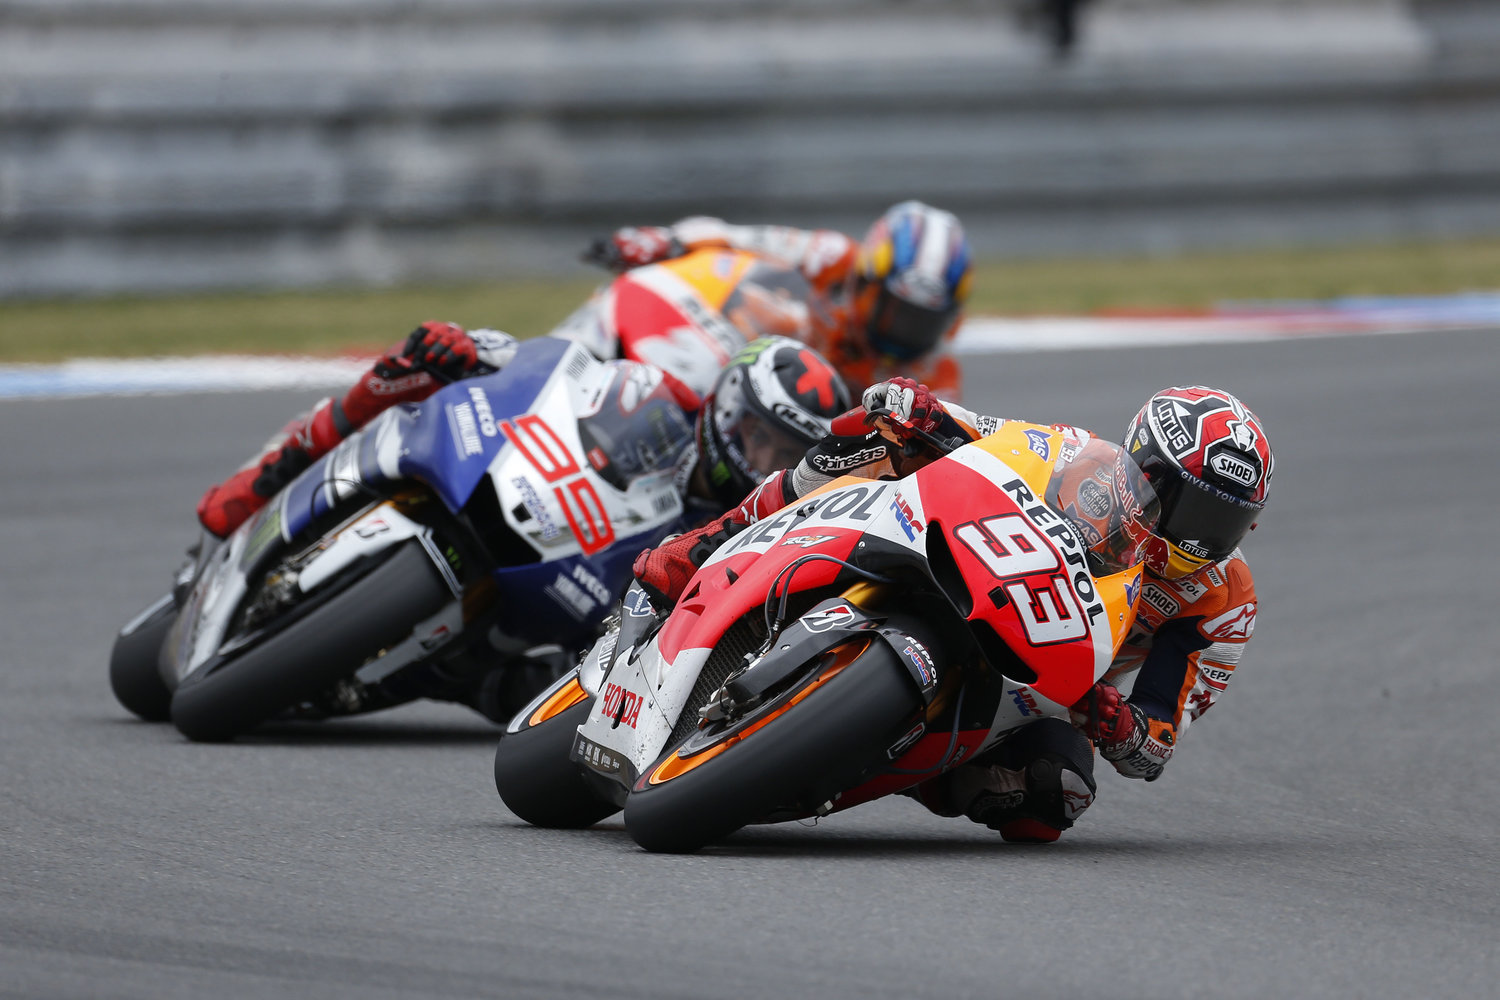 Grand Prix MotoGP Republique Tcheque en direct streaming live